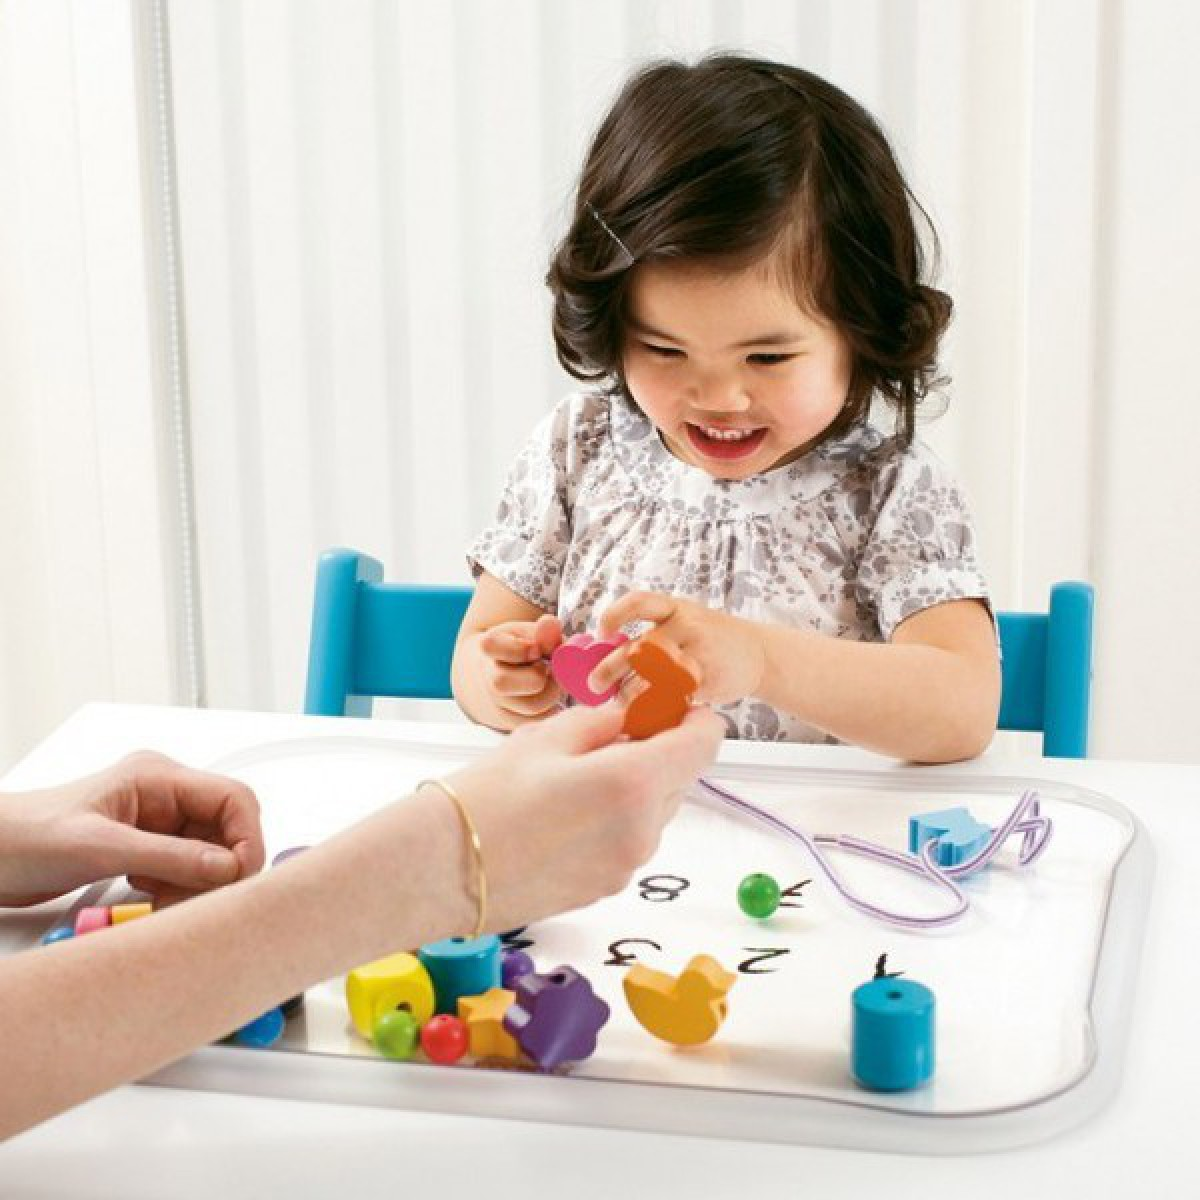 Stokke Table Top Tray With Double Sided Learning Plates